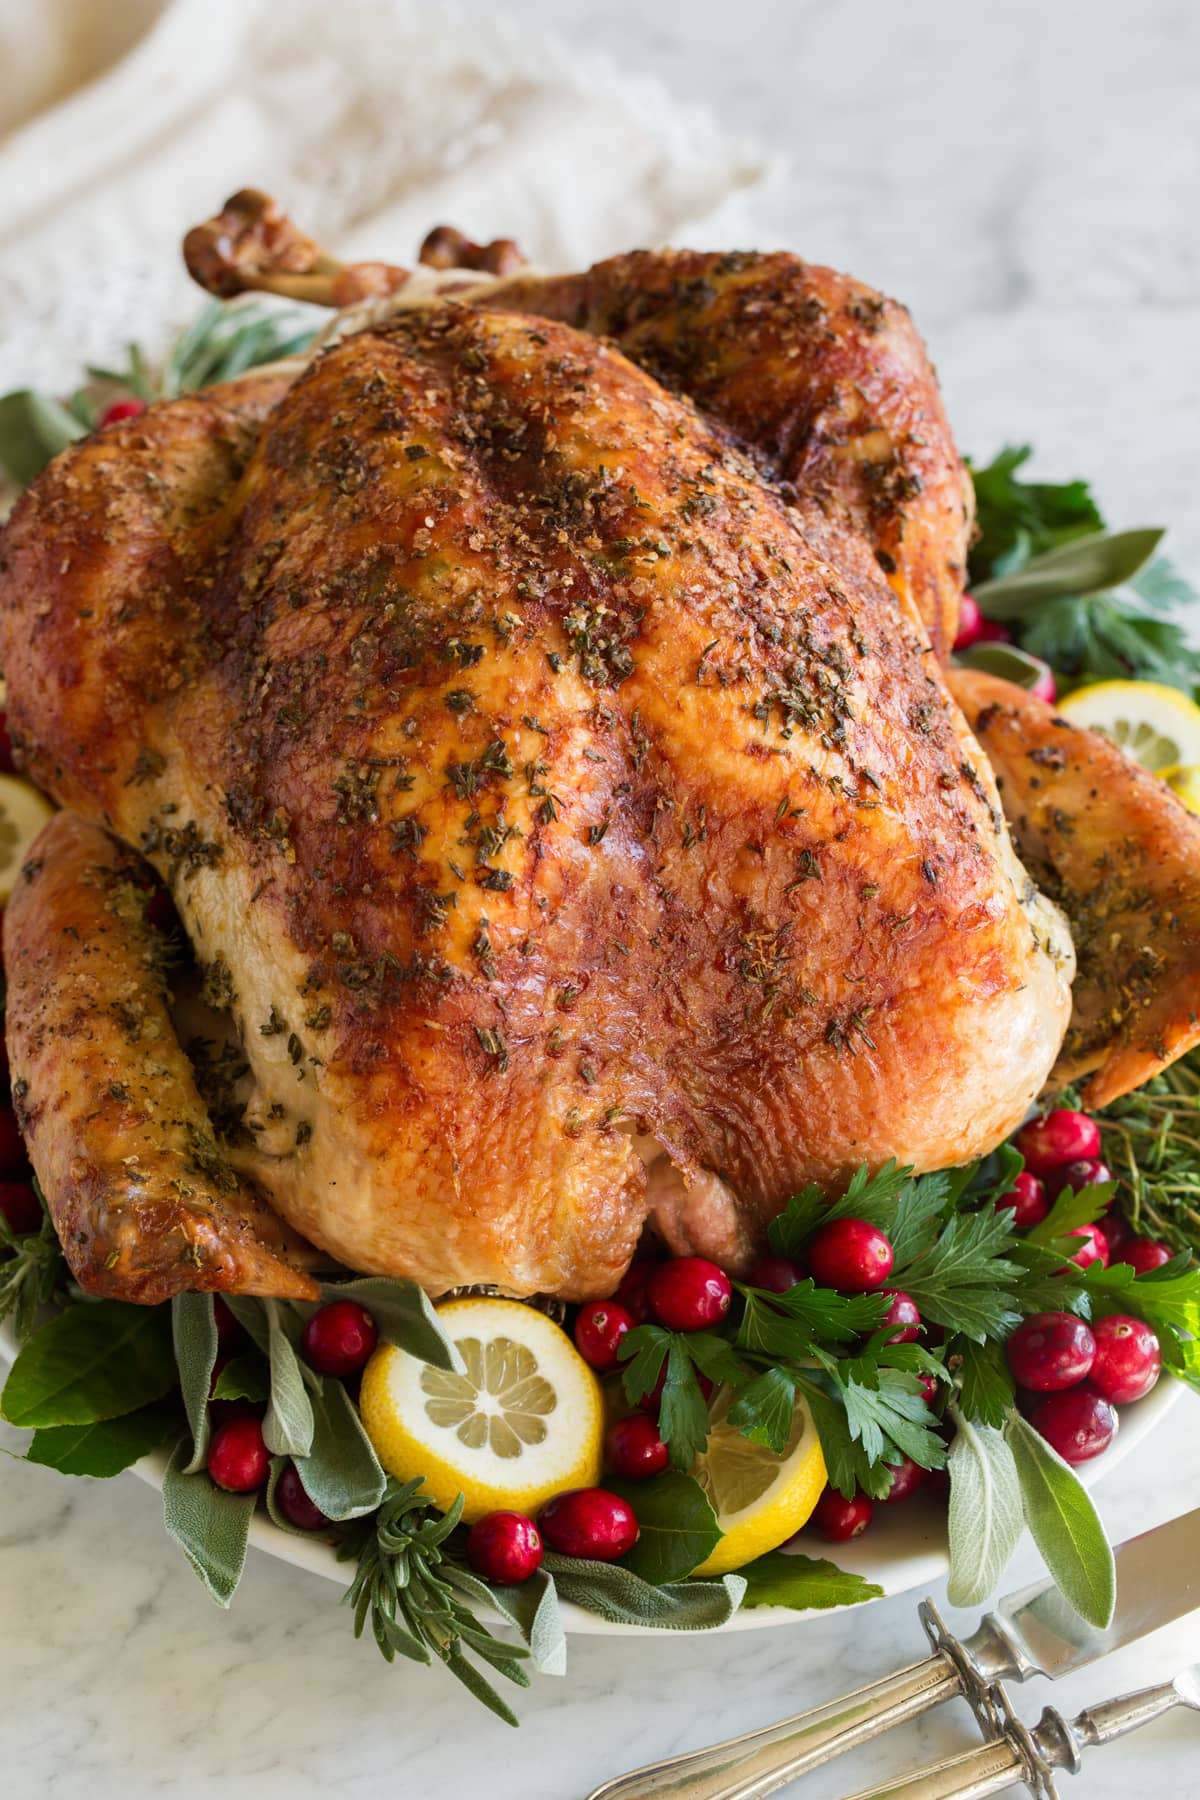 Close up image of a roasted turkey.